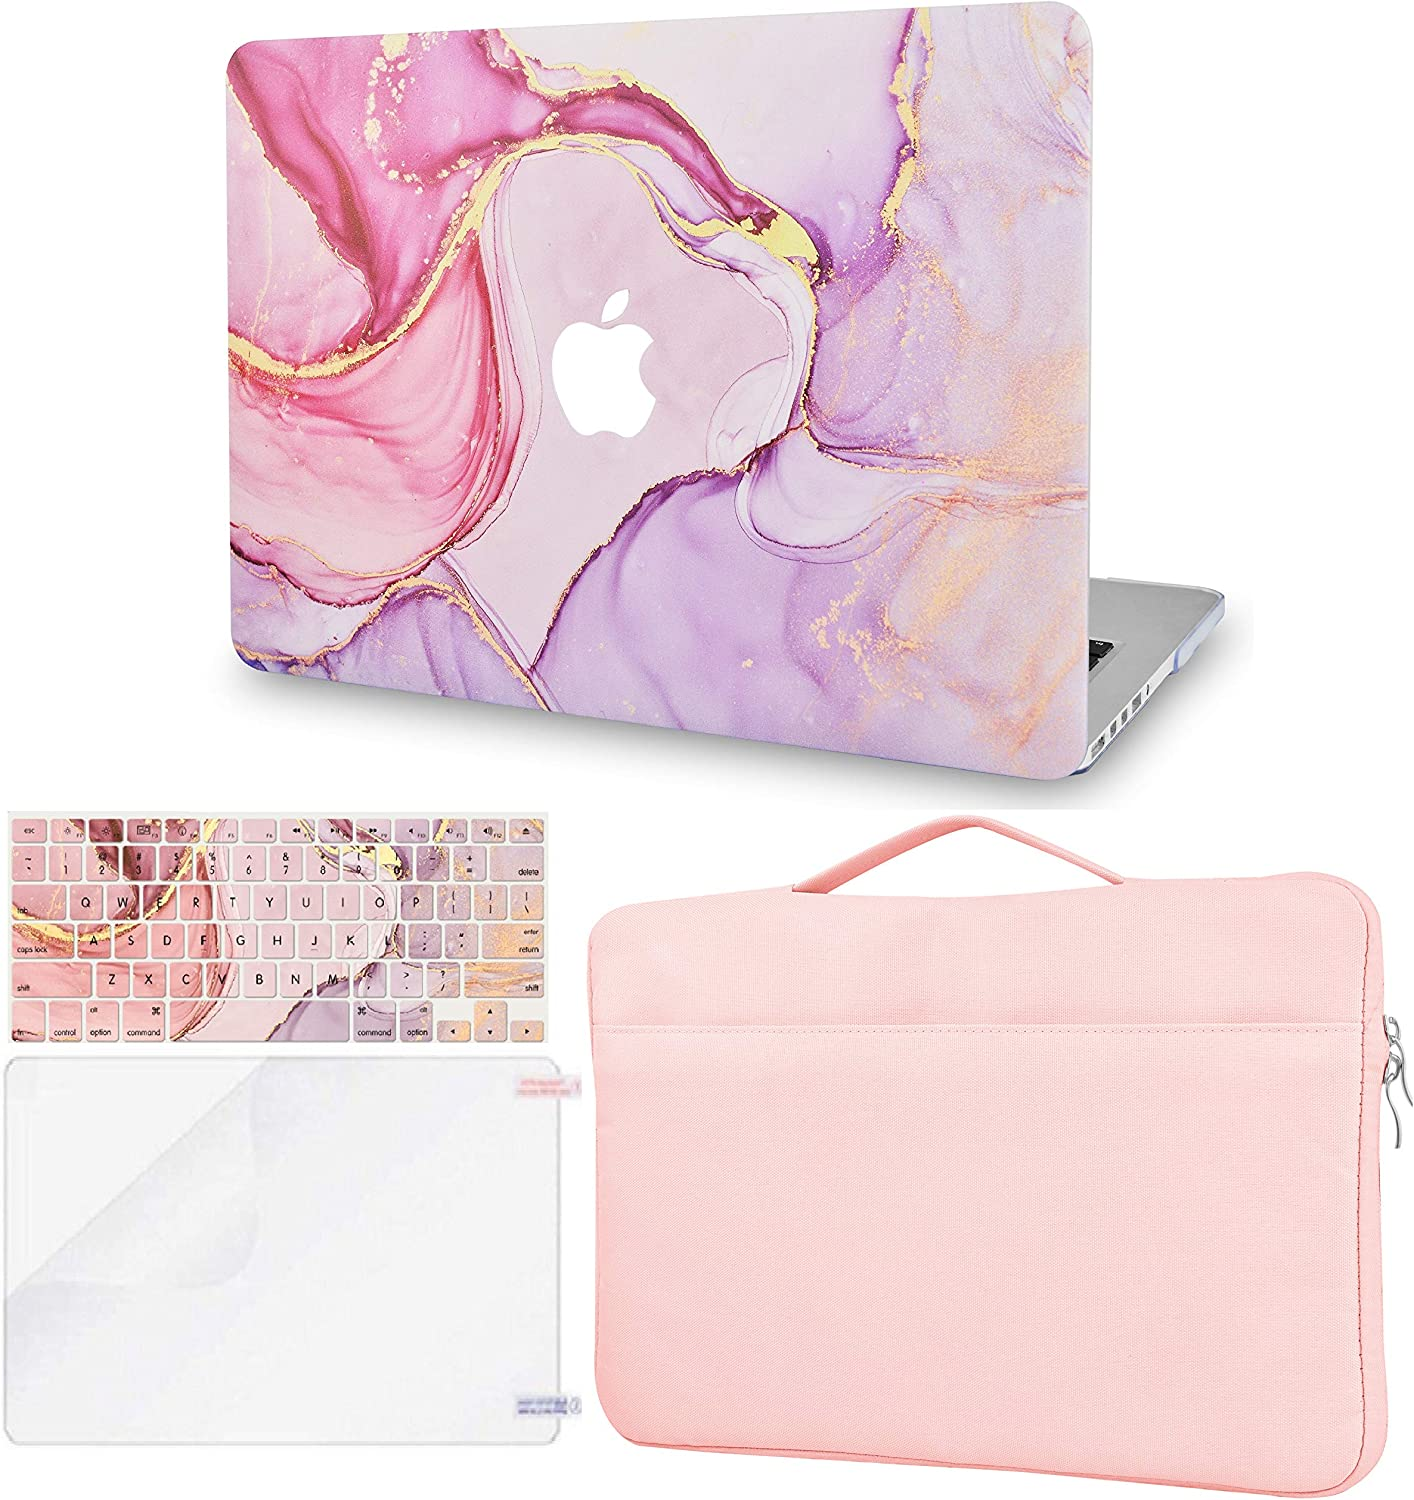 LuvCase 4 in 1 Laptop Case Compatible with MacBookAir 13 Inch (2010-2017) A1466/A1369 (No Touch ID) HardShellCover, Sleeve Bag, Keyboard Cover & Screen Protector (Rose Lavender Marble)